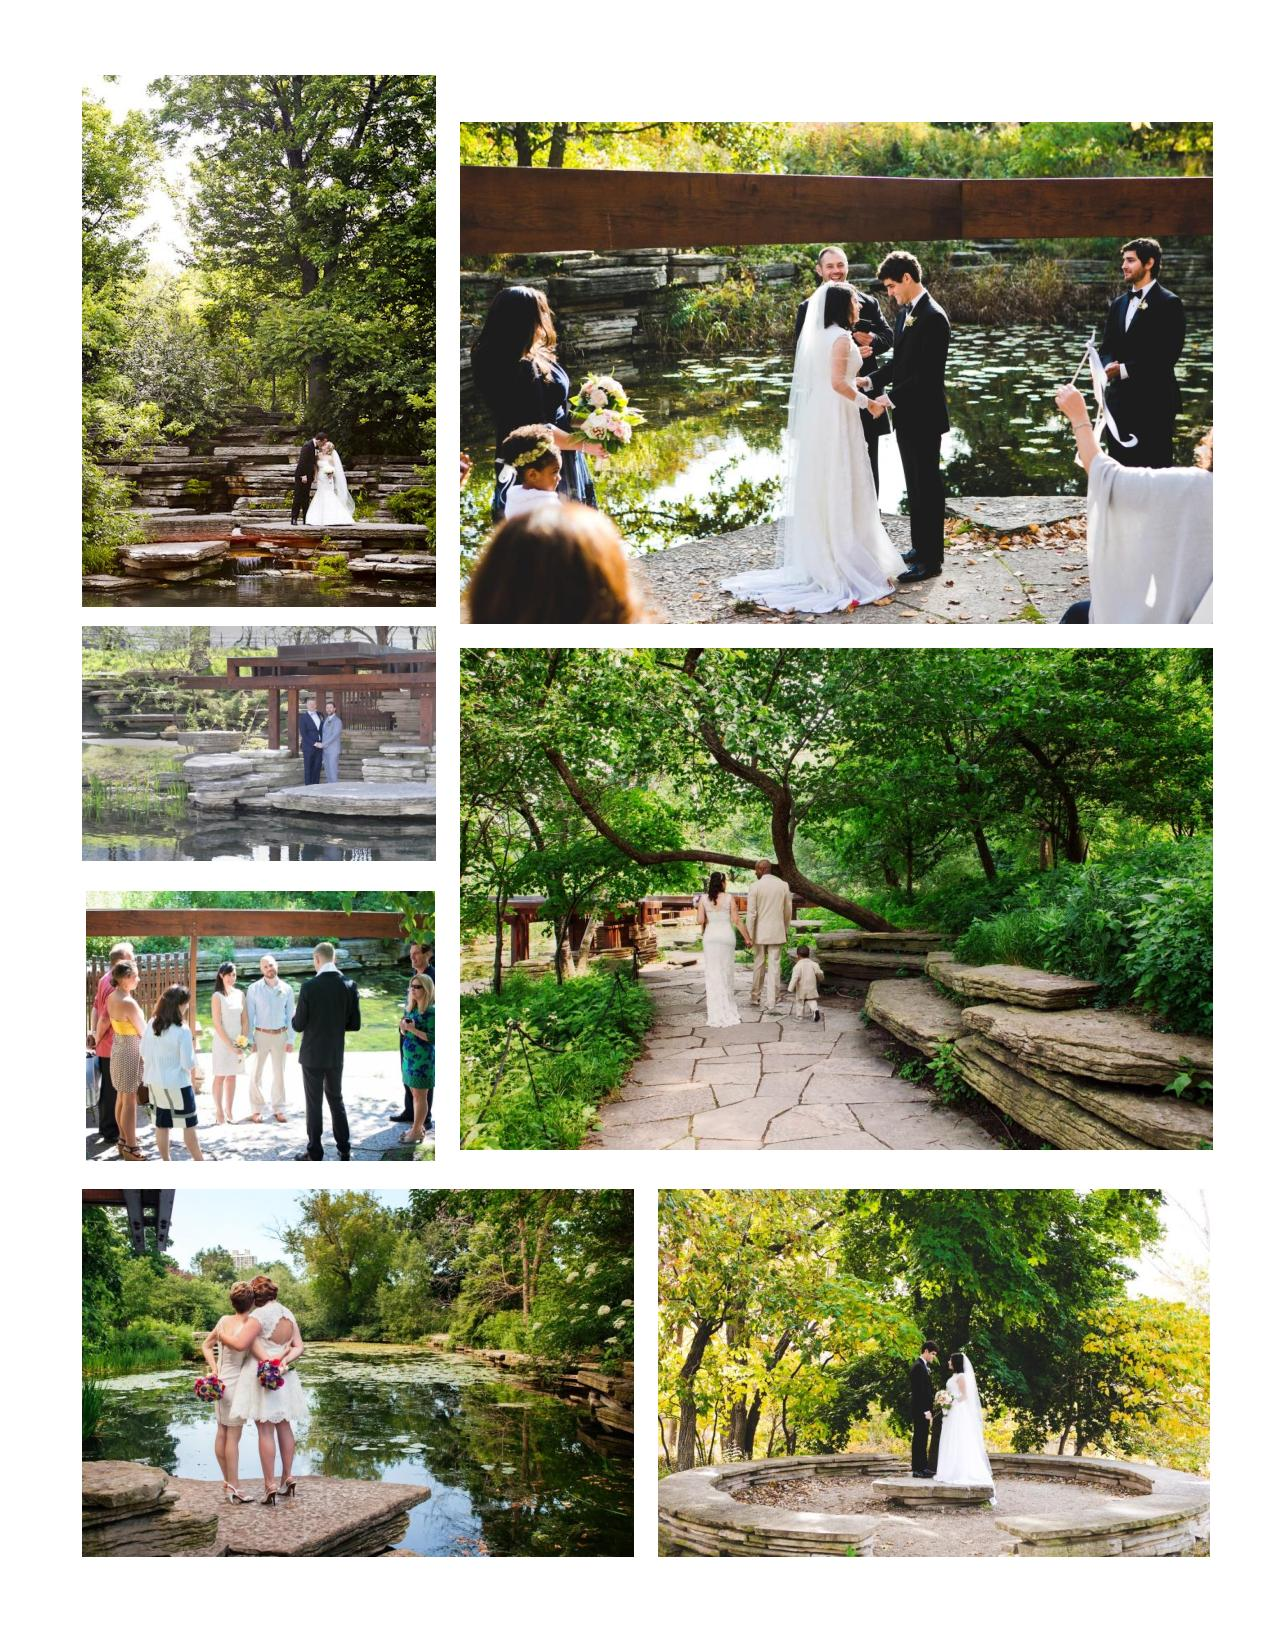 Lily Pool Photo Grid Layout-page-001